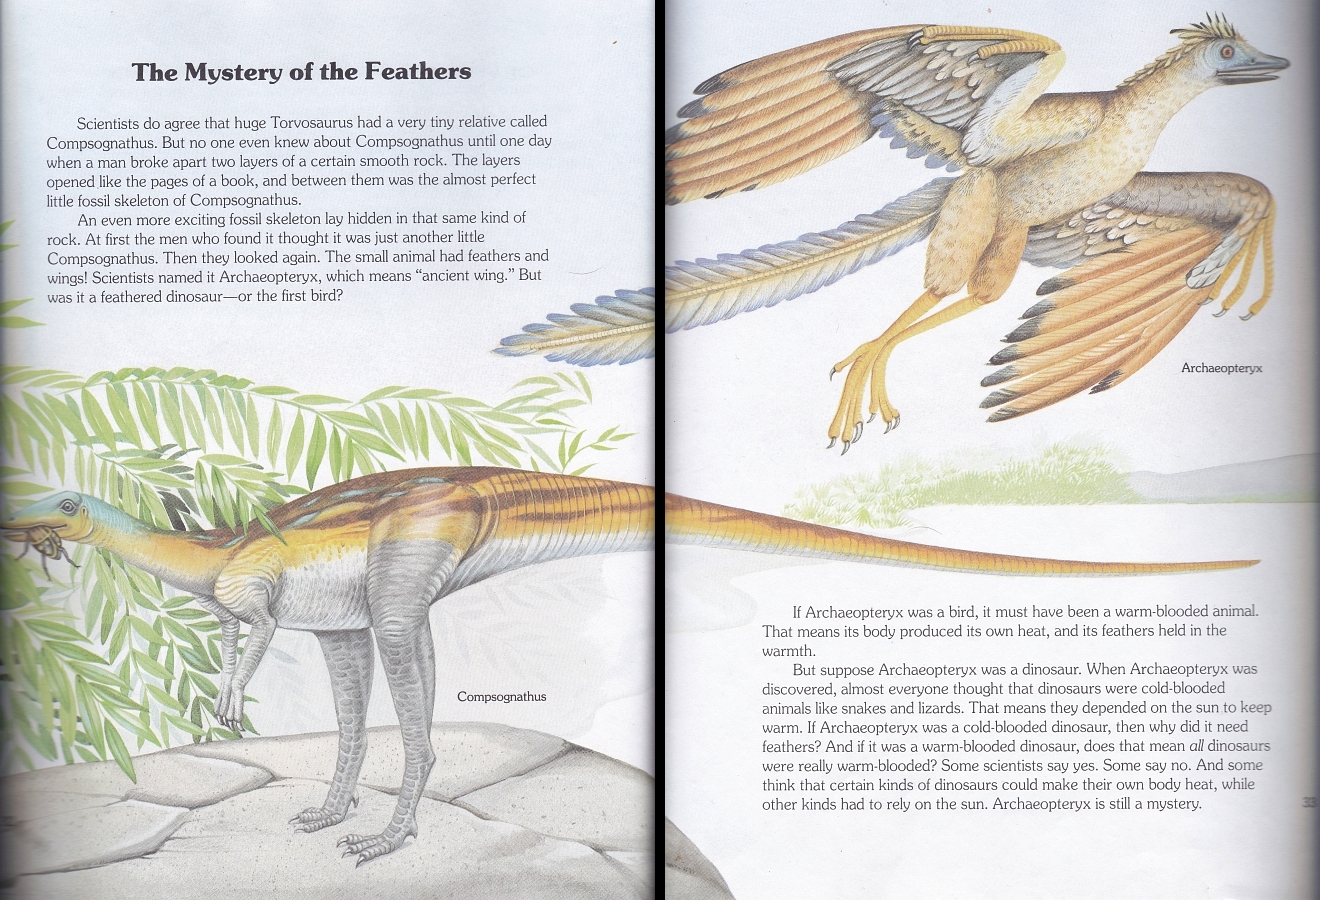 Compsognathus and Archaeopteryx by Christopher Santoro